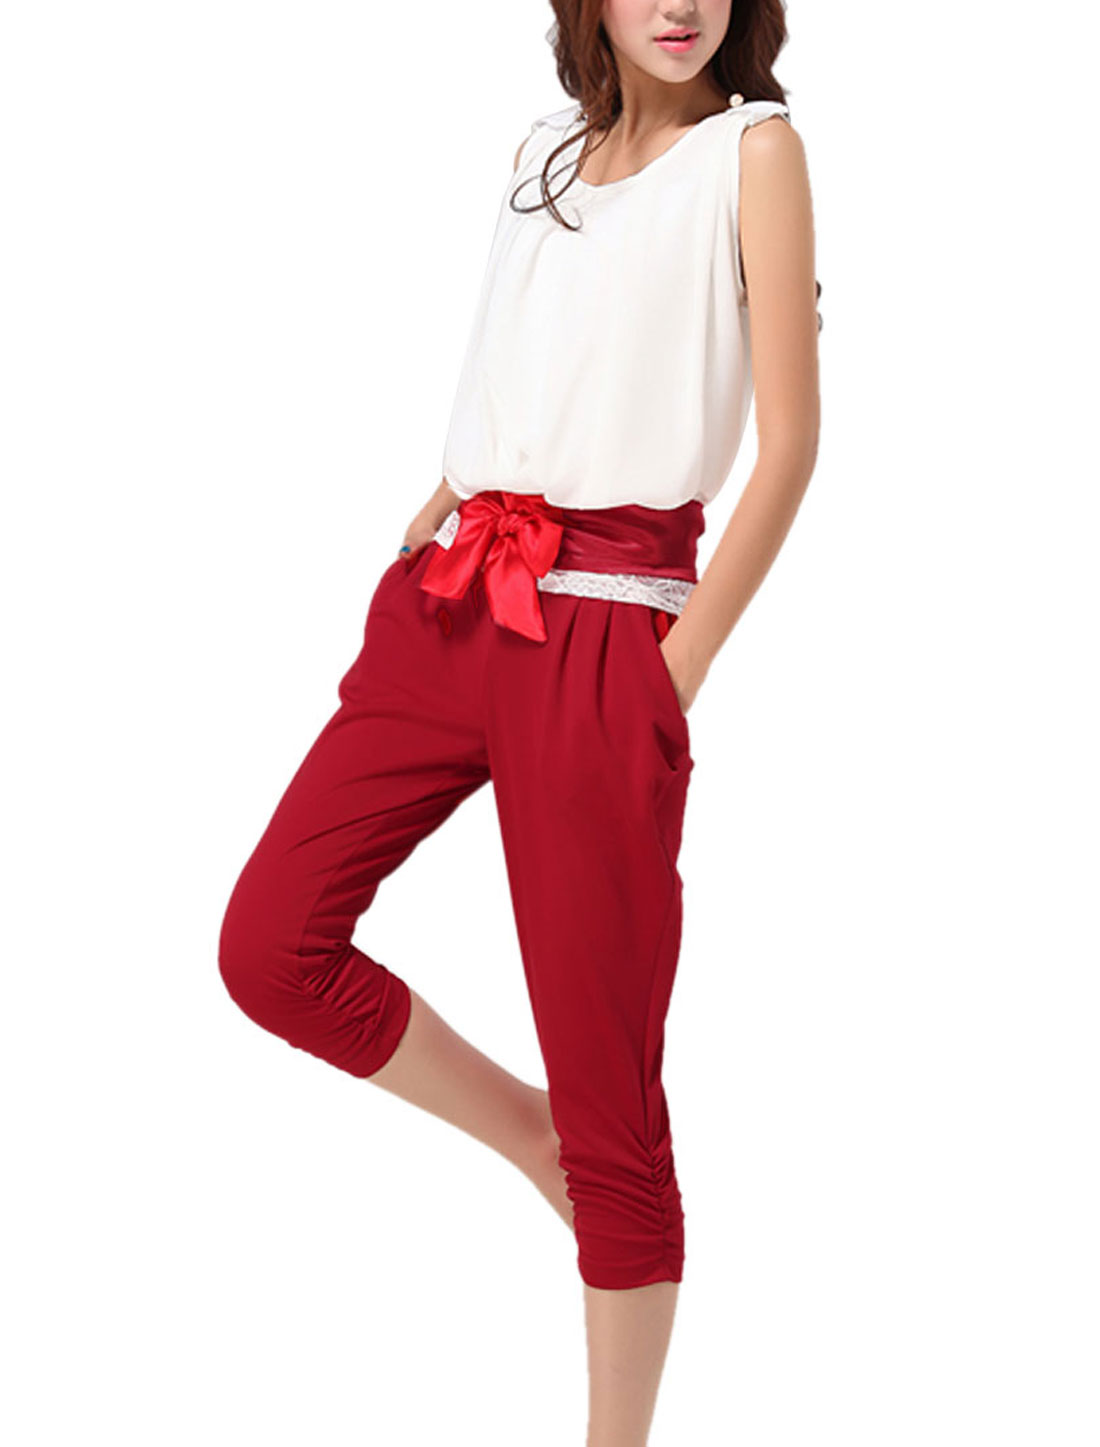 Ladies Sleeveless Round Neck Tops w Pockets Capris Pants Red White XS